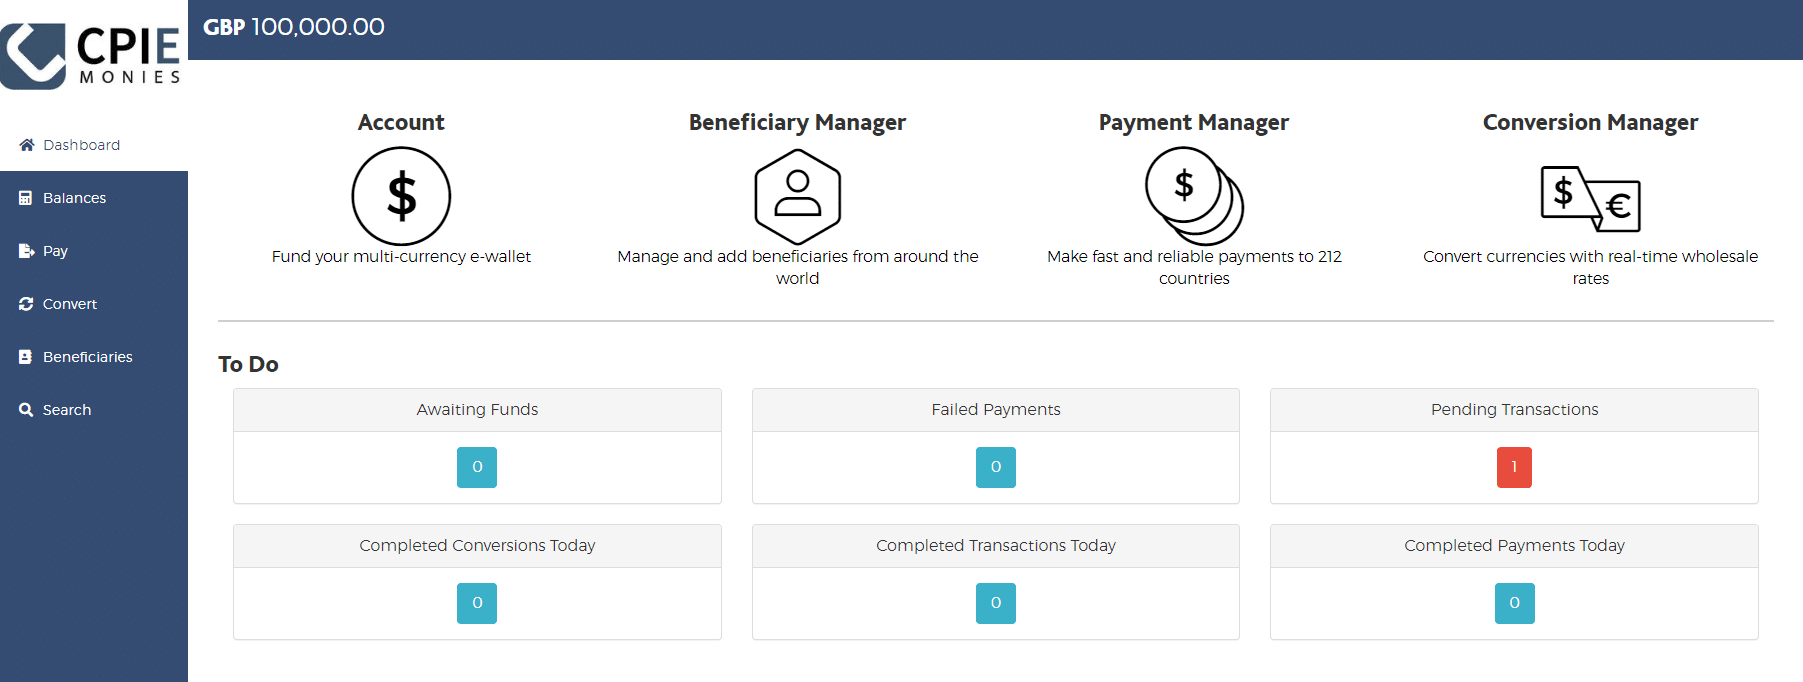 CPIE Monies dashboard